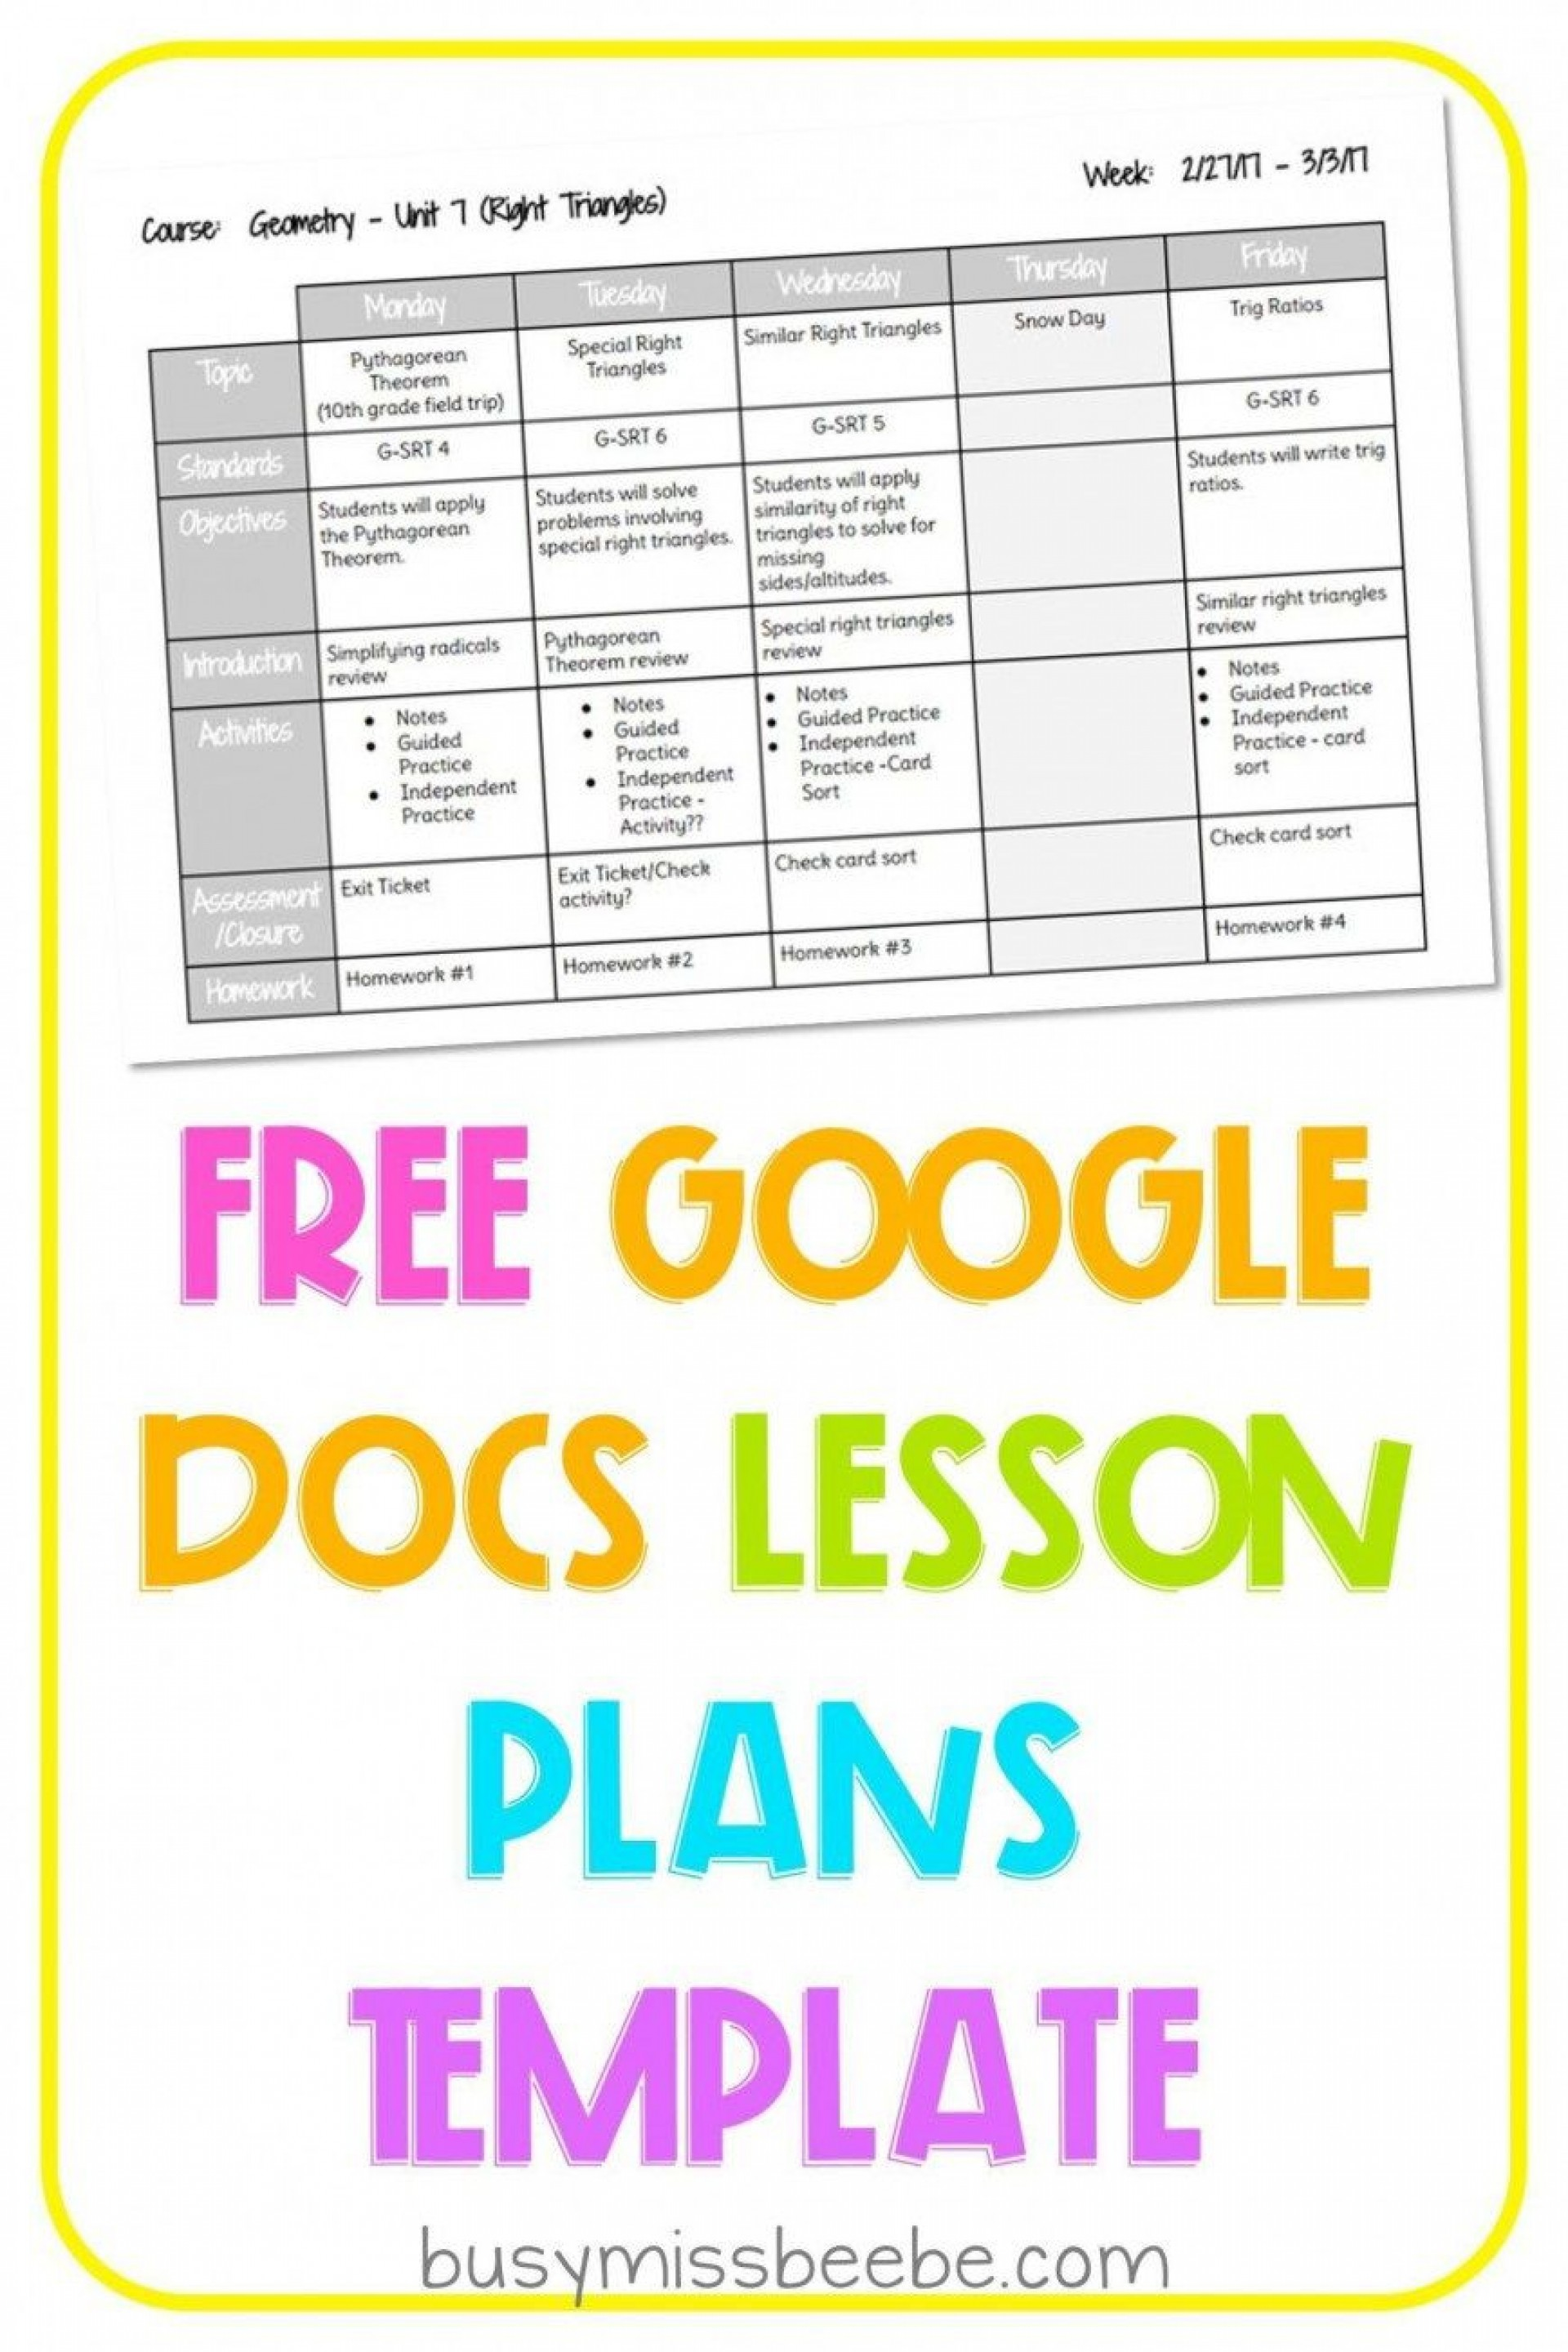 009 Impressive Weekly Lesson Plan Template Google Doc High Def  Docs 5e Simple1920